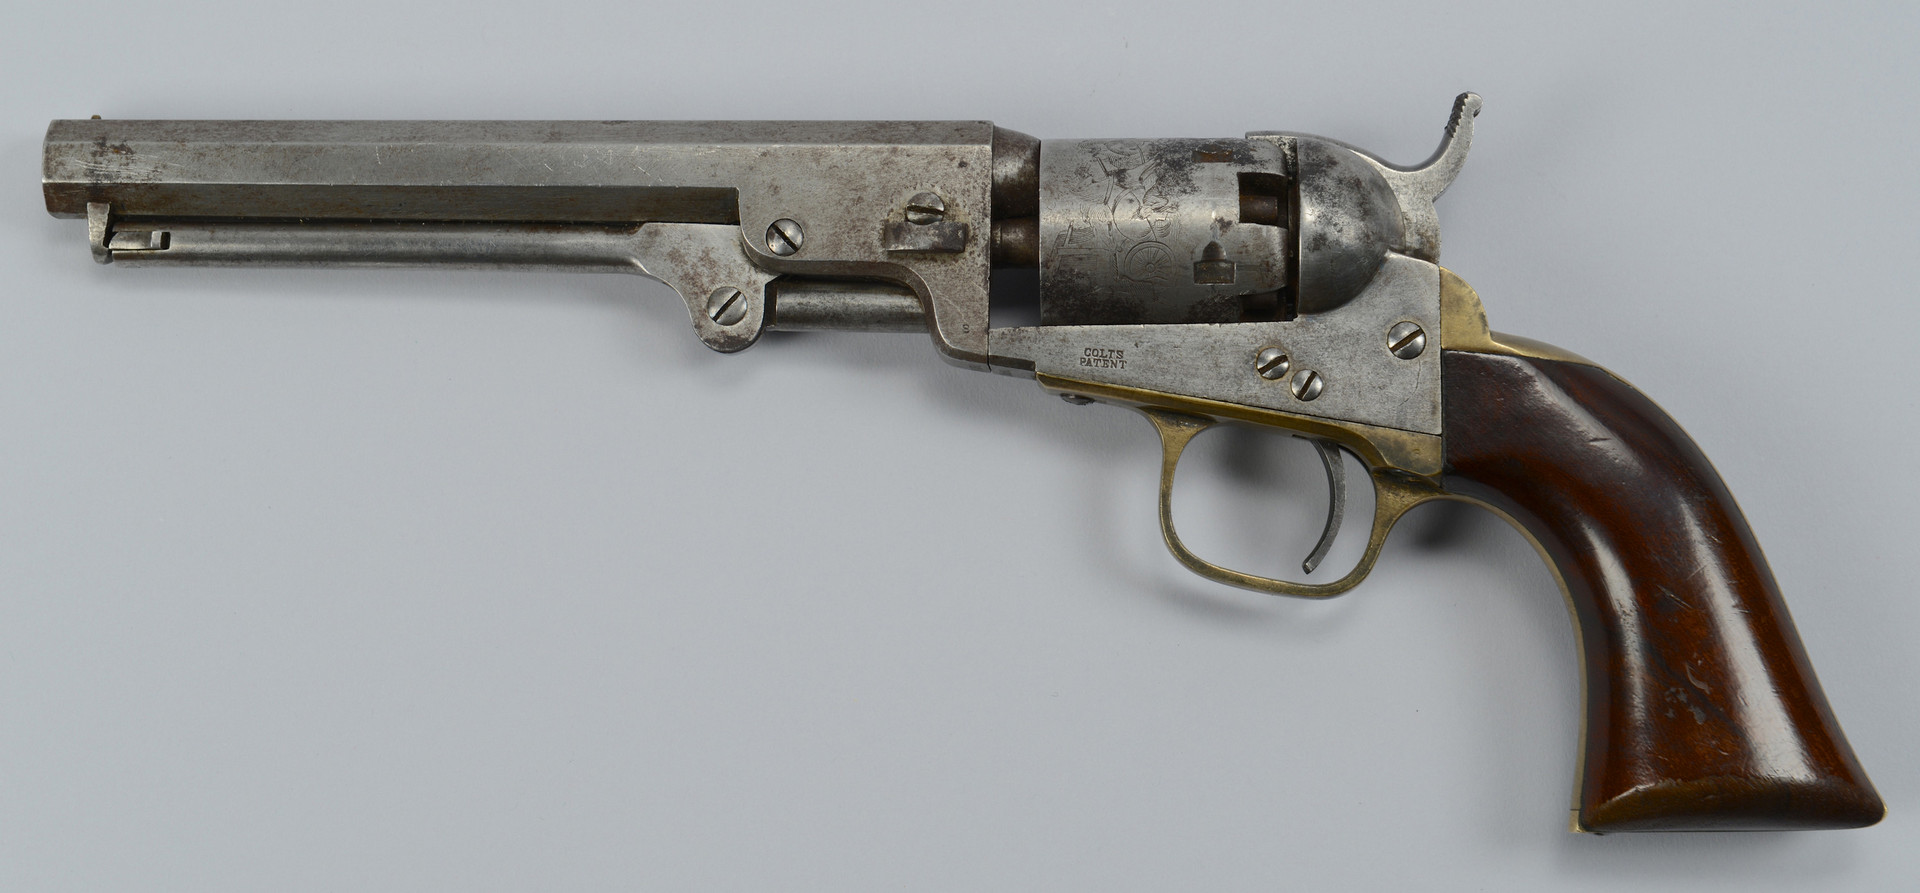 Lot 389: Colt Model 1849 Pocket Revolver, 1859